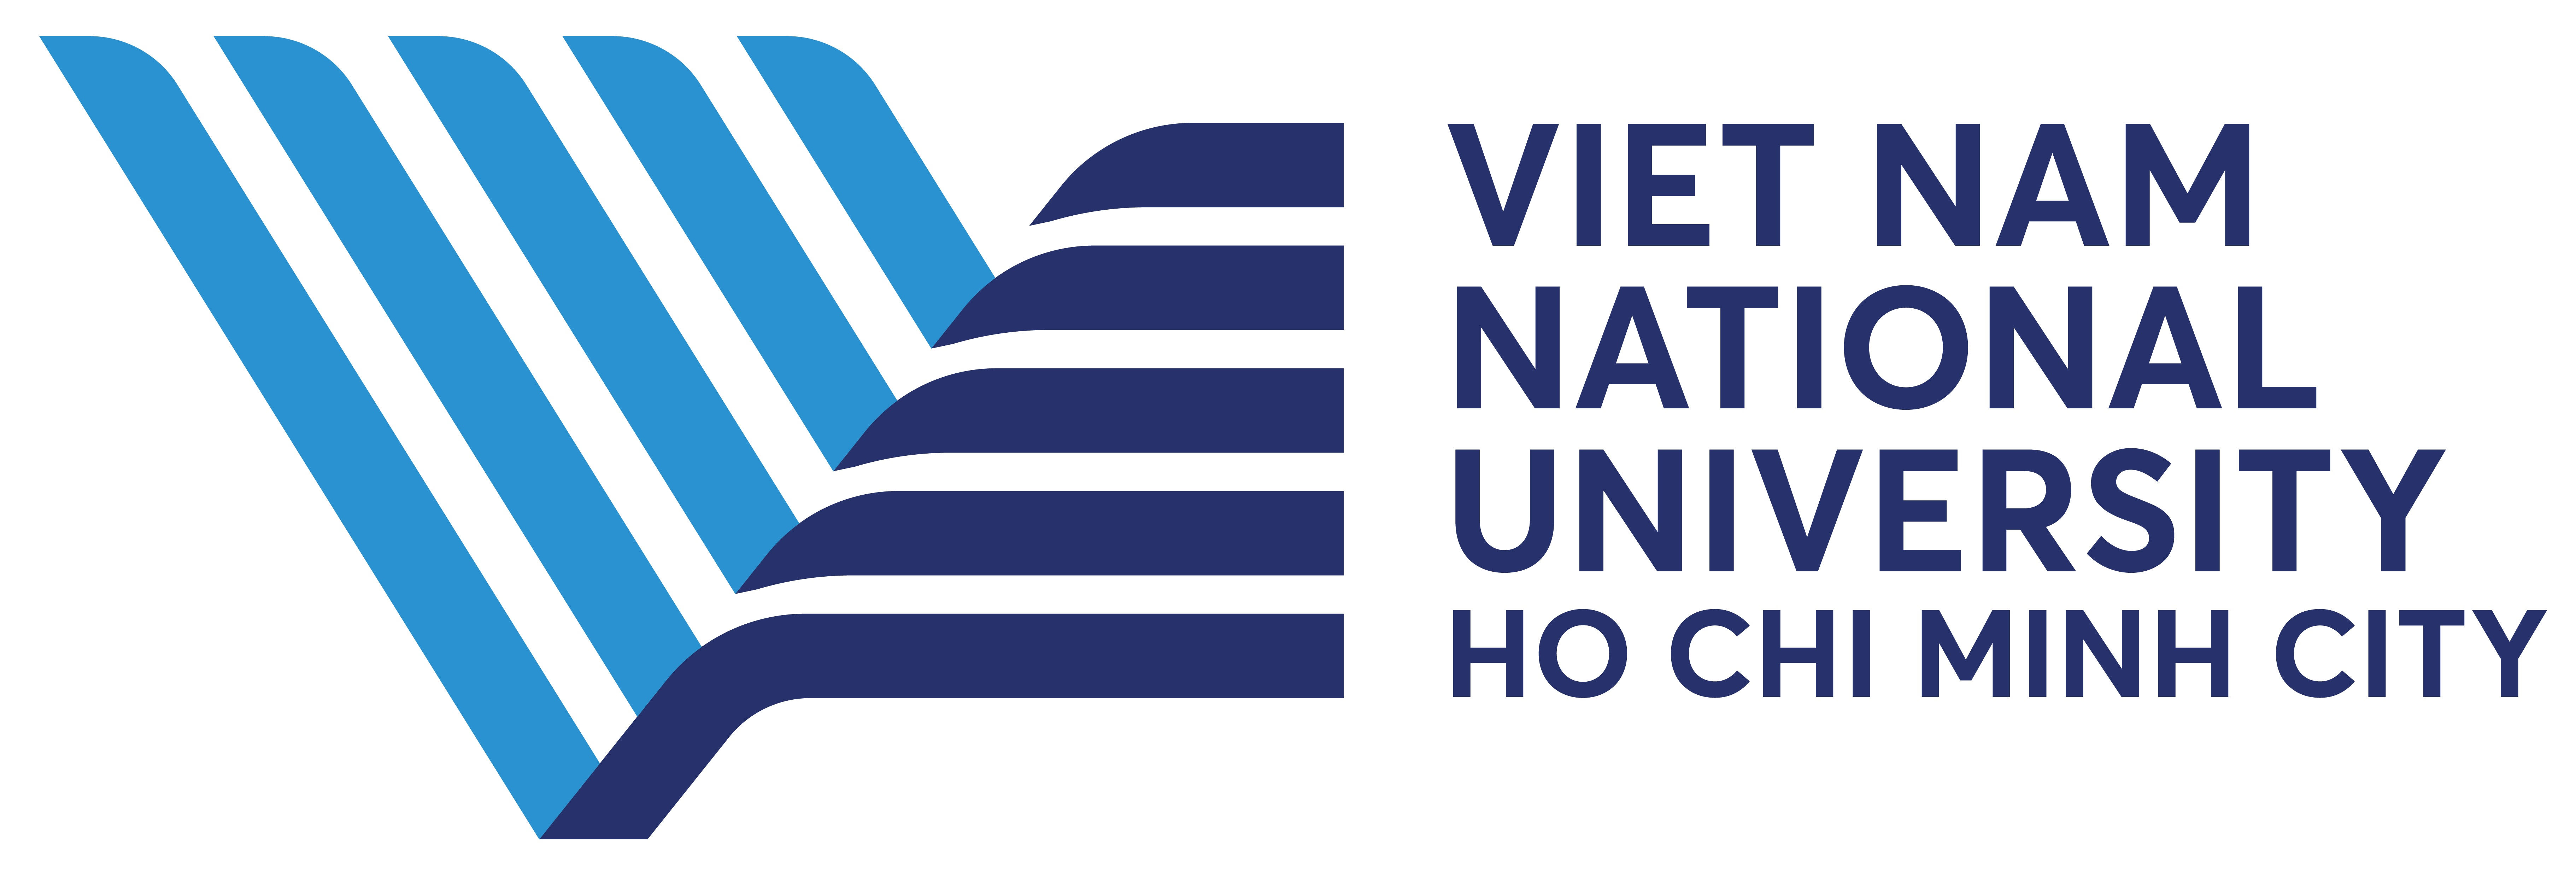 Viet Nam National University Ho Chi Minh City aims at becoming nucleus of Ho Chi Minh City's innovative eastern urban area